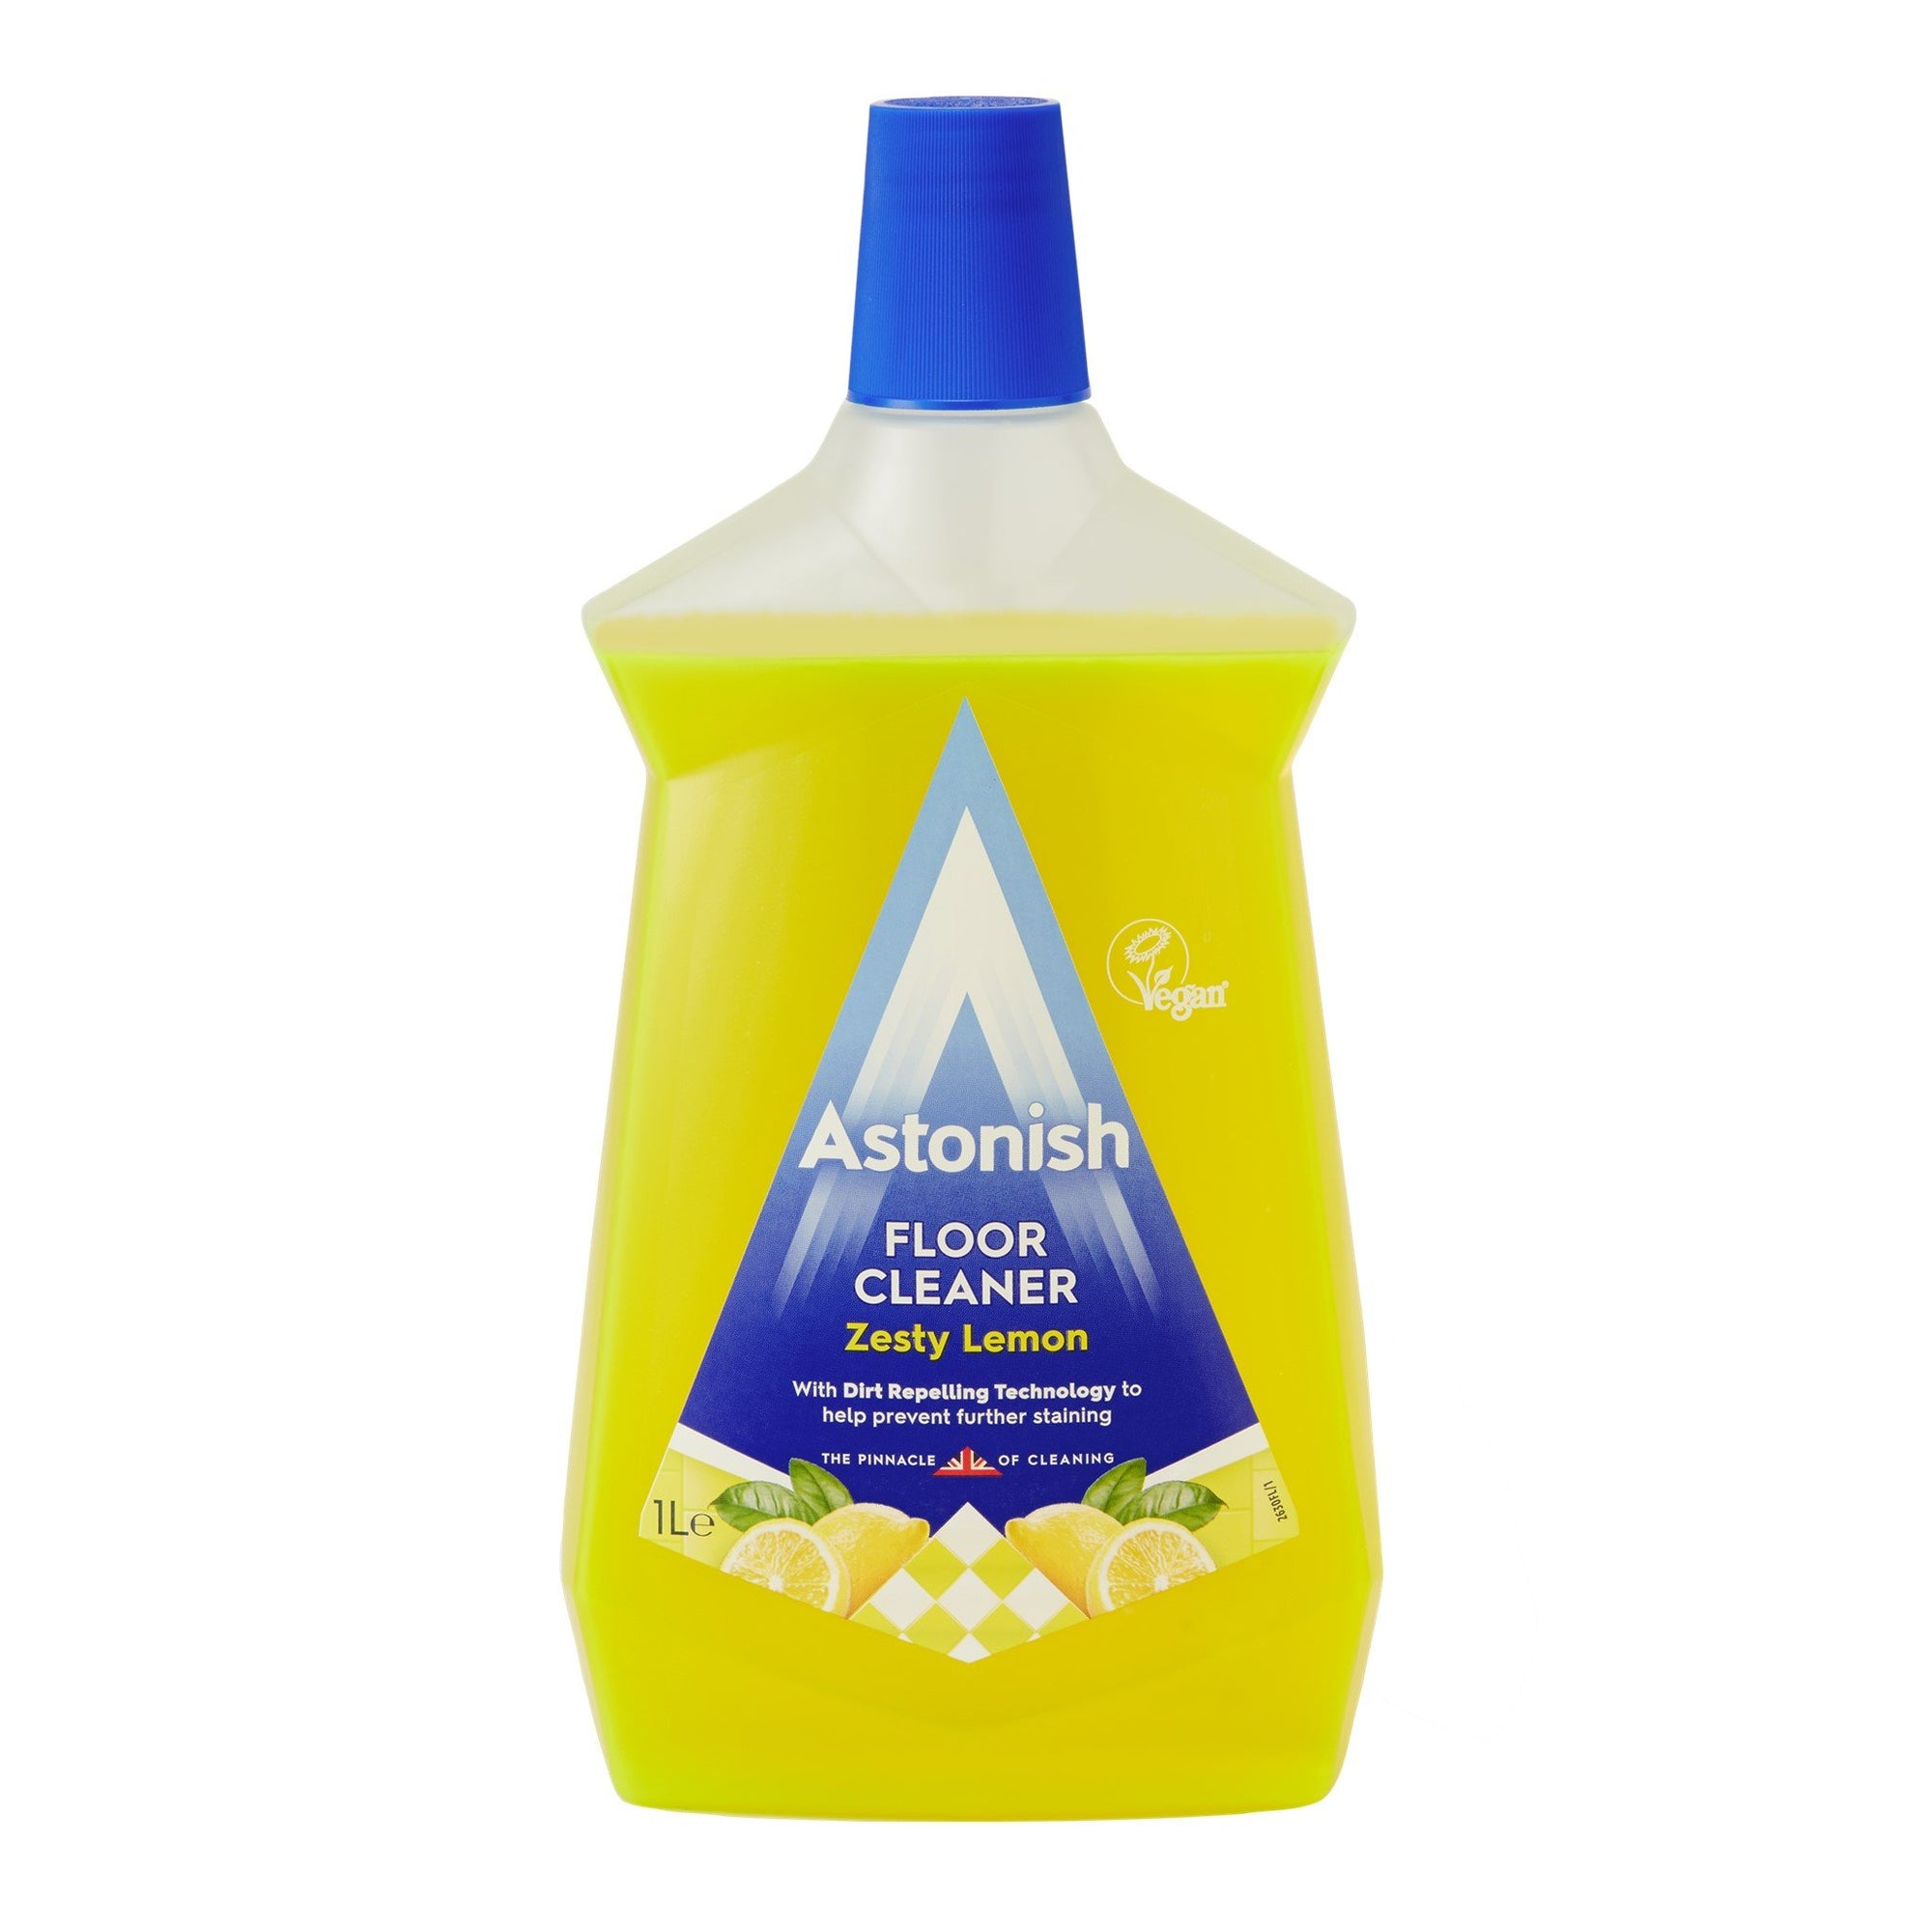 Astonish Floor Cleaner Zesty Lemon 1L